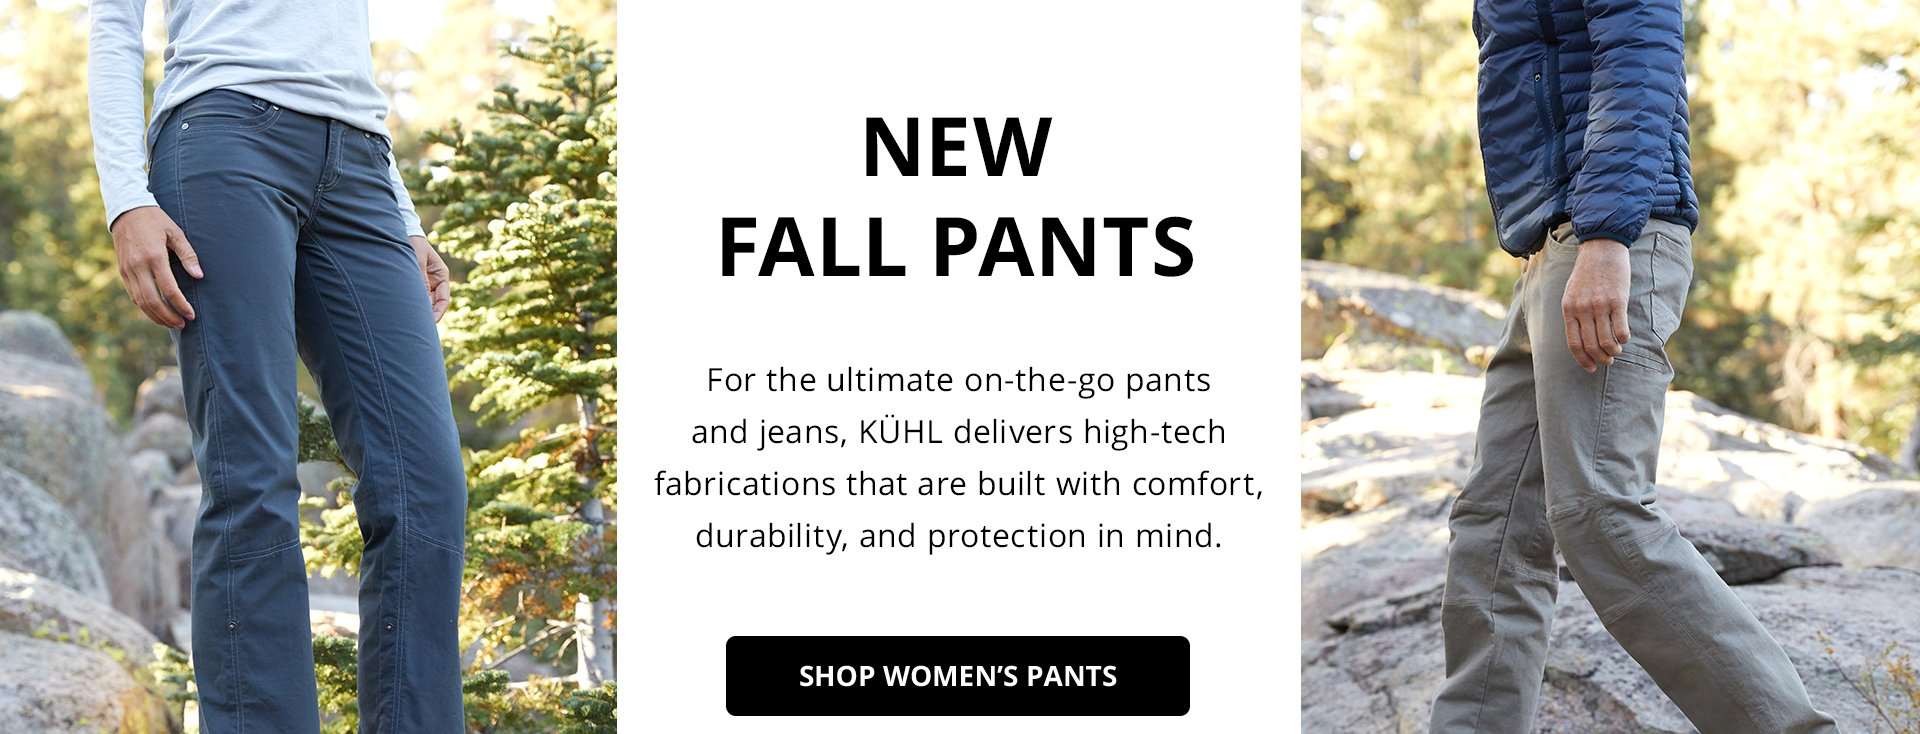 New Fall Pants. Shop Women's Pants.